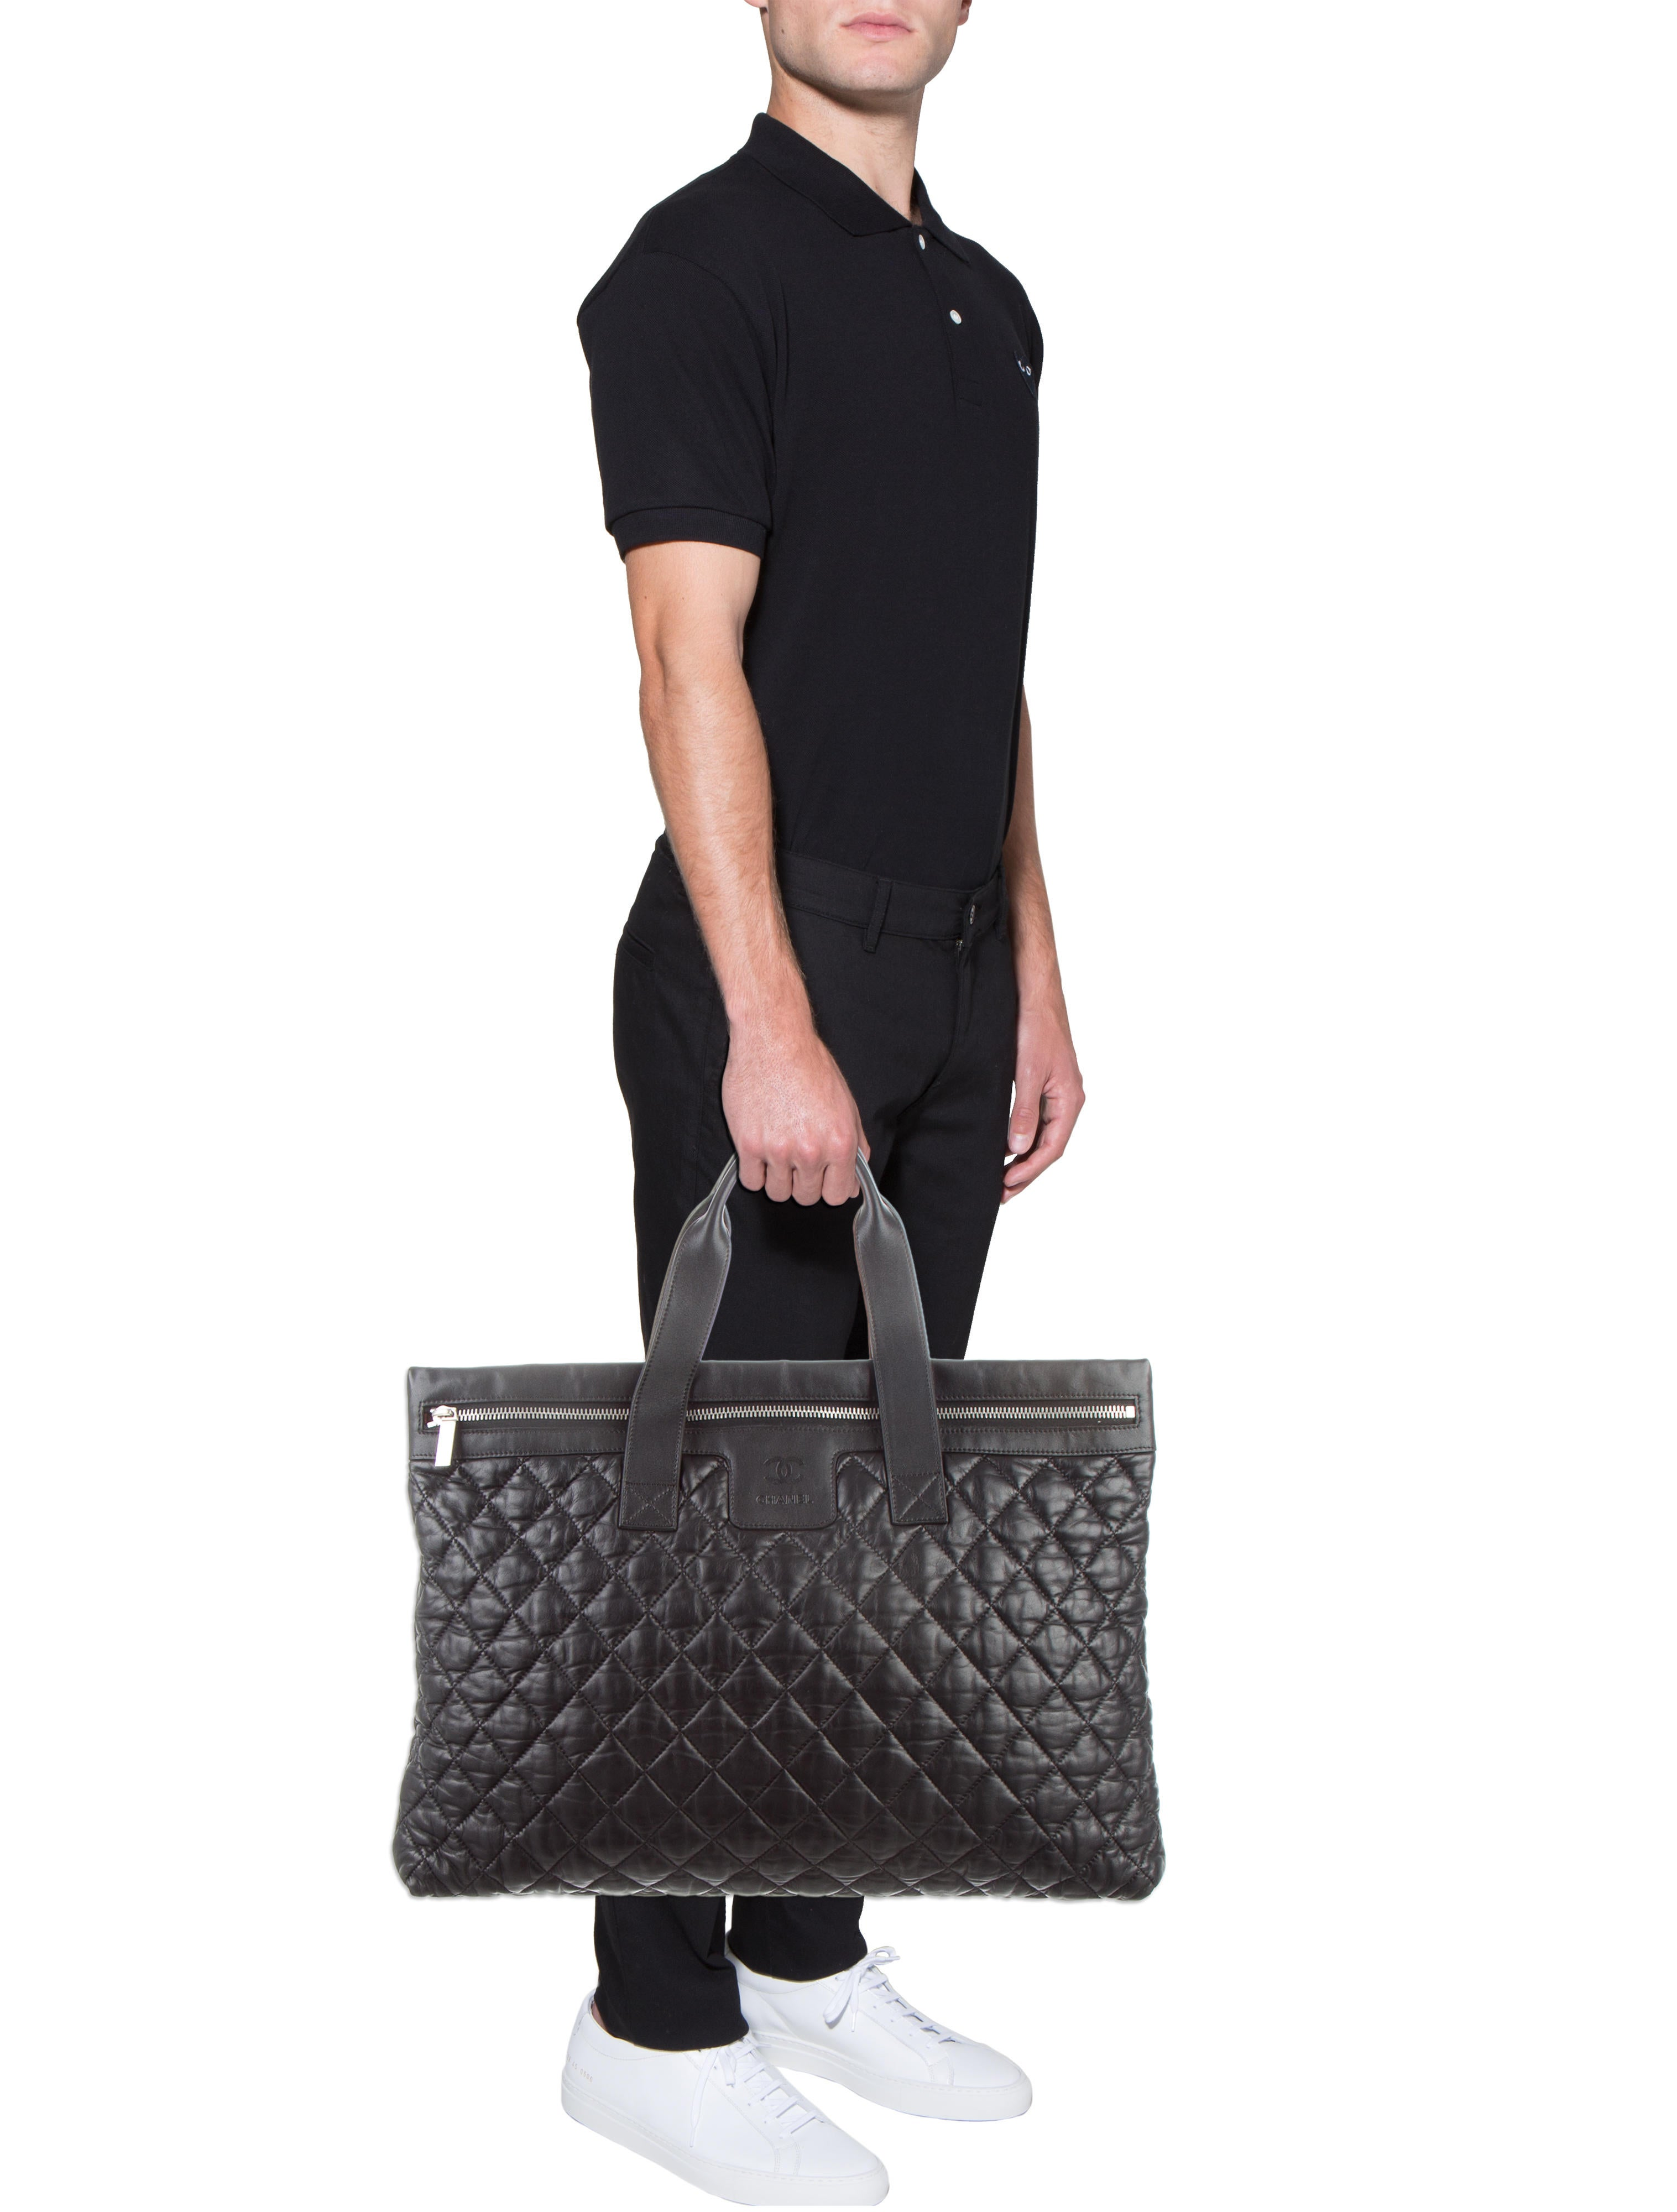 Chanel Coco Cocoon Tote - Bags - CHA209713 | The RealReal